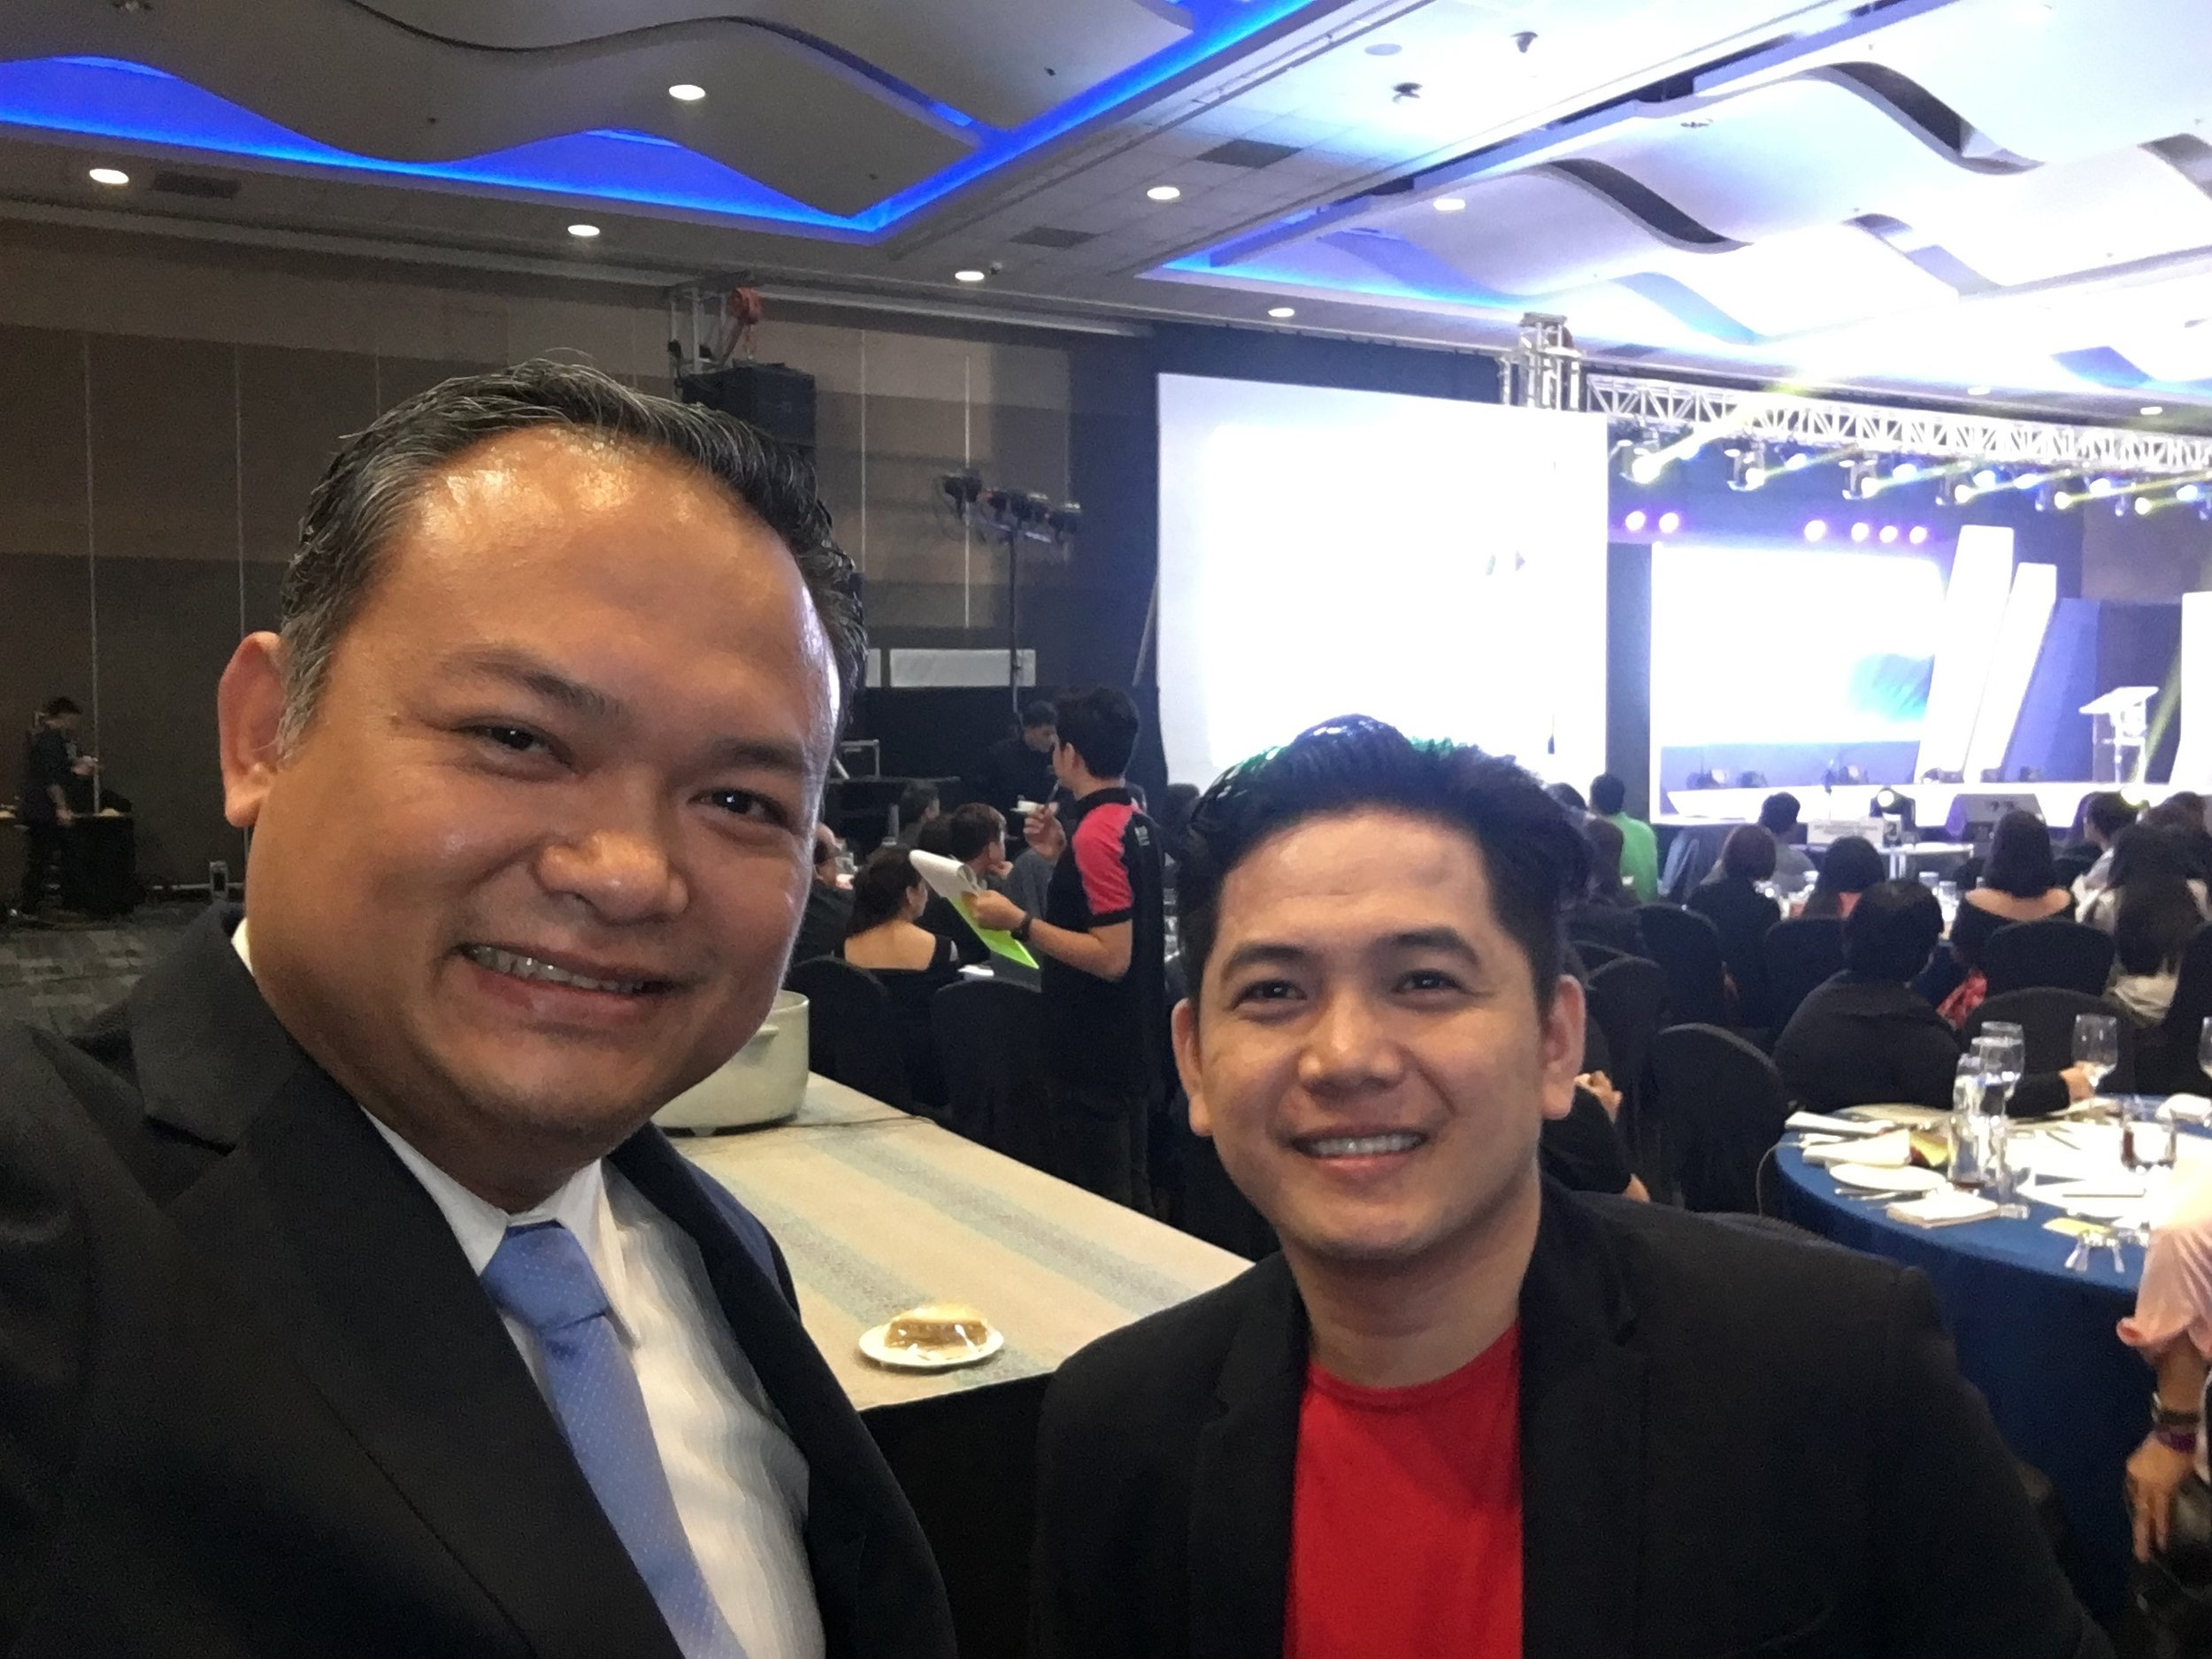 """""""Congratulations Sir Eric for another successful learning event today. We are glad to have you as one of our partner speaker at ARIVA Speaker Bureau."""" - JM Matienzo, Chairman, Ariva Academy -"""